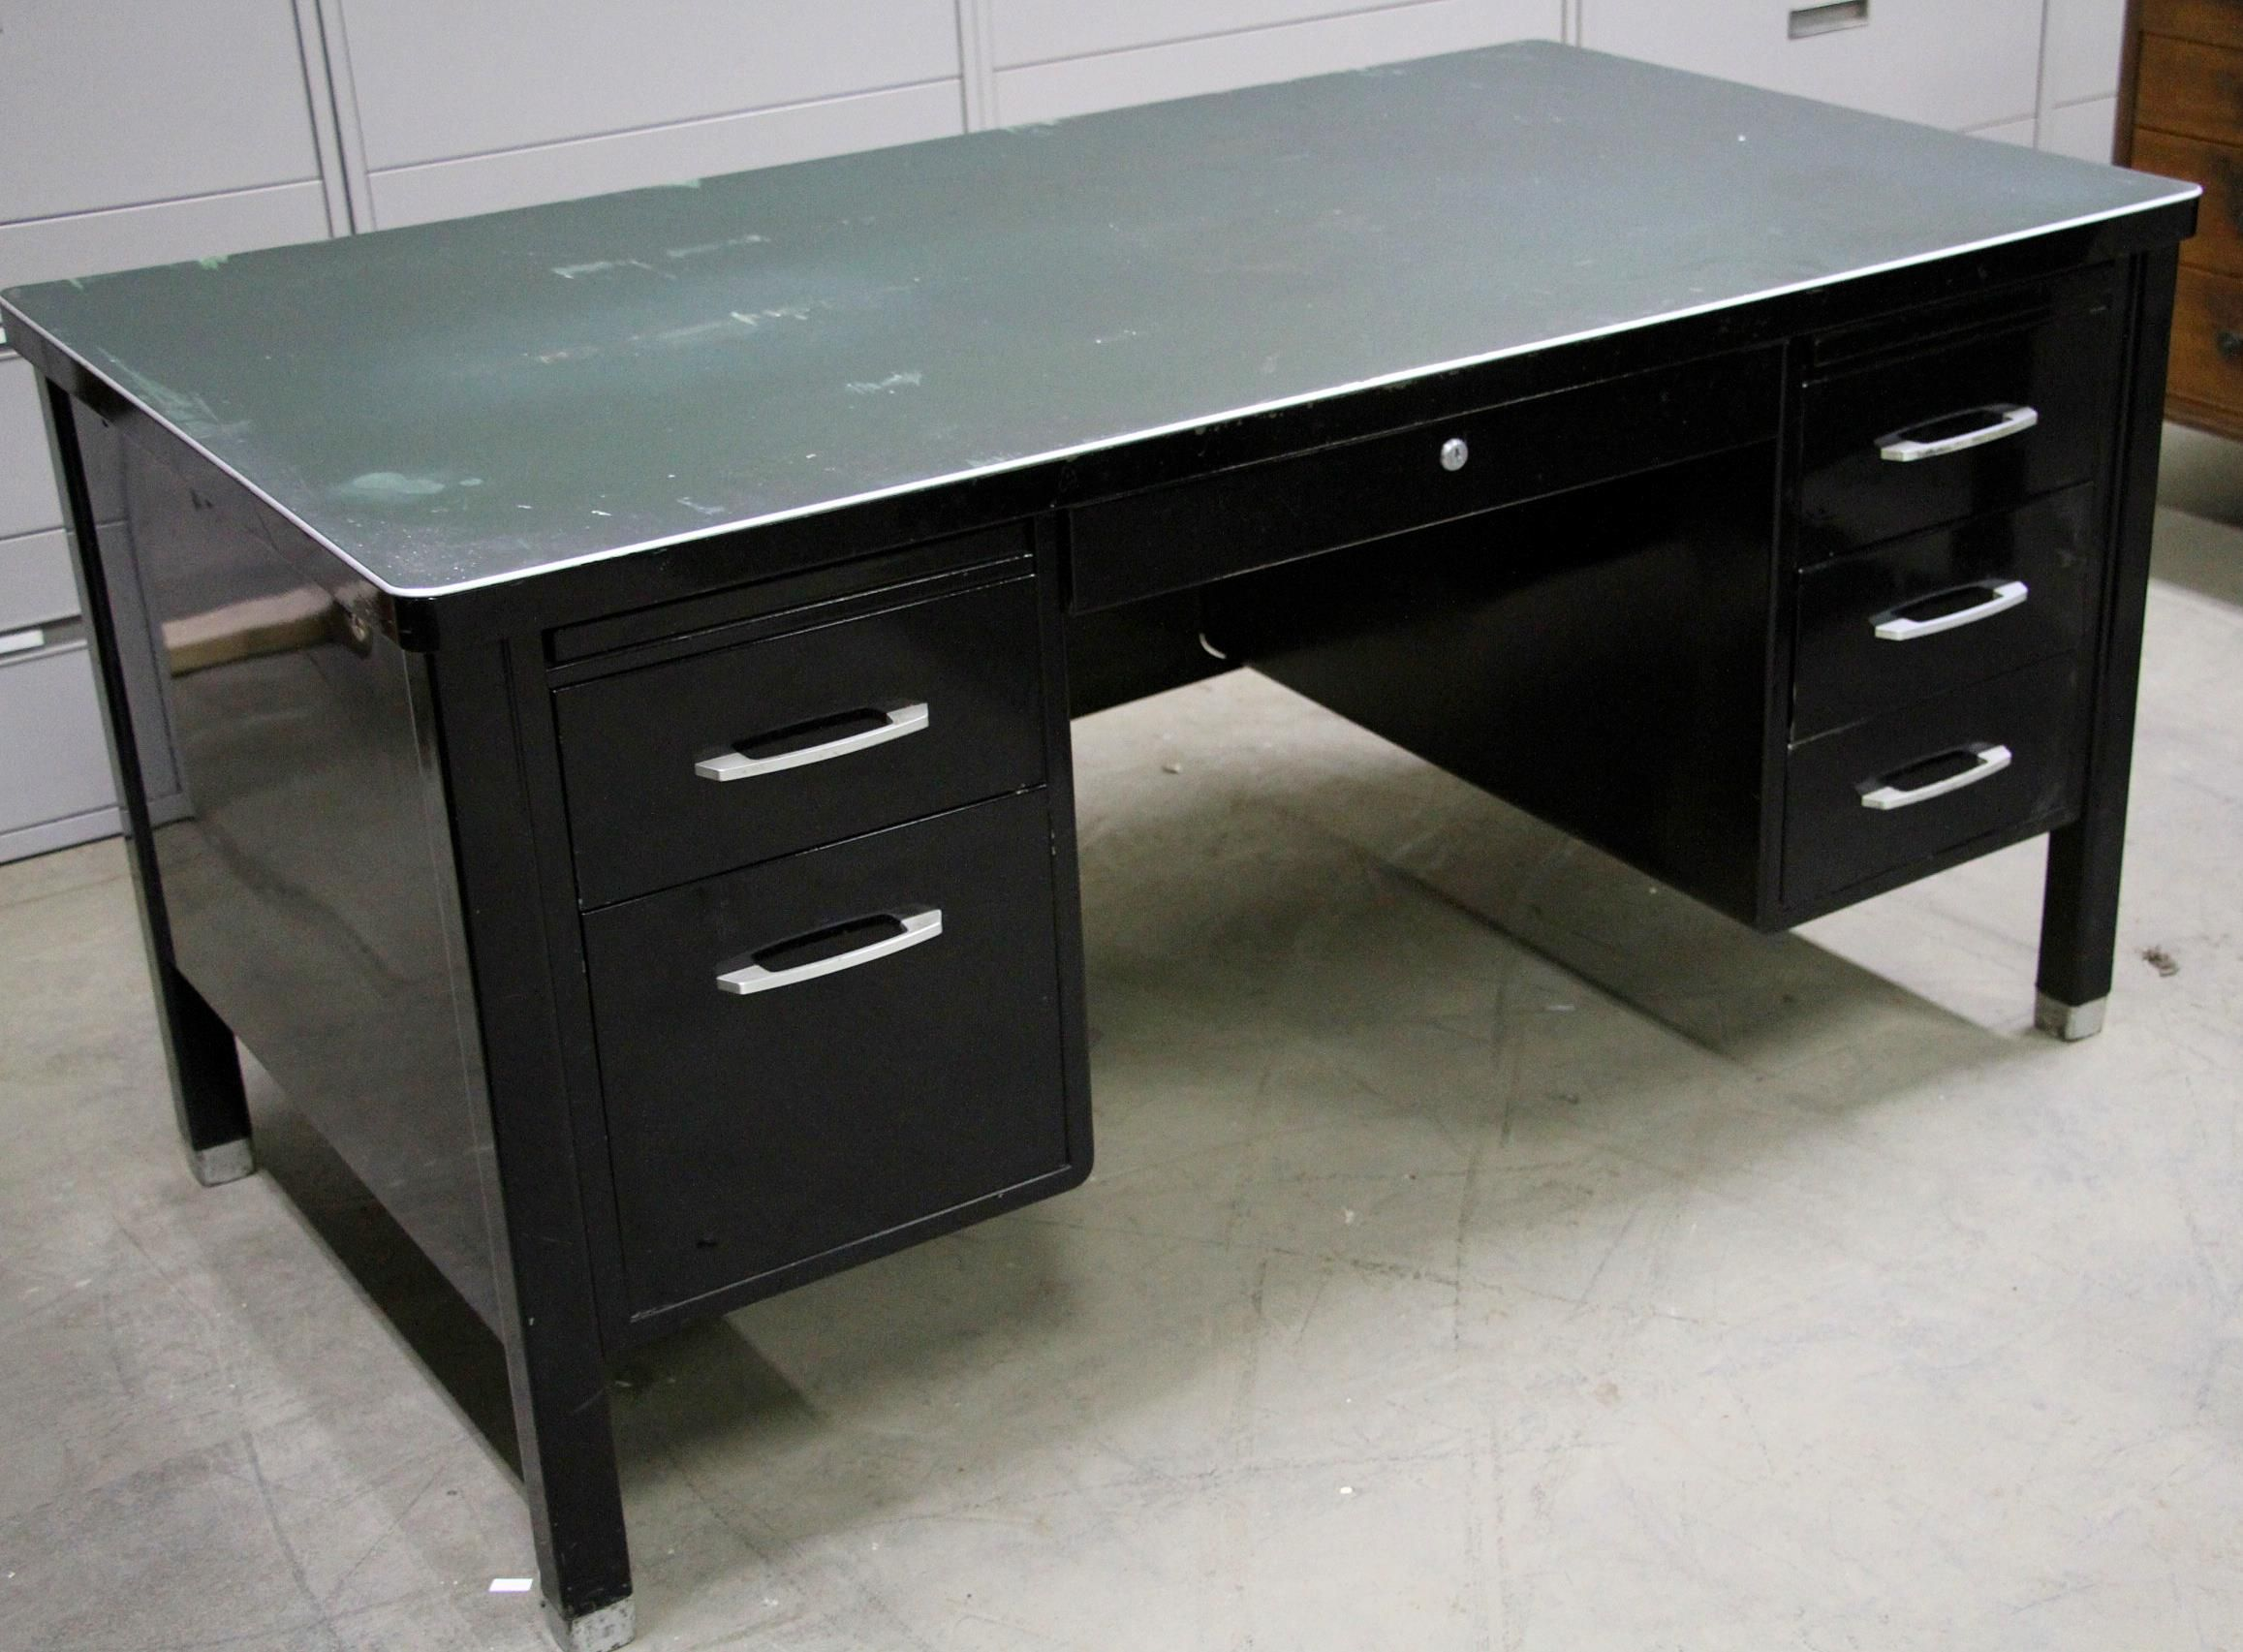 Uncategorized Vintage Steel Tanker Desk vintage steel black tanker desk velvoleum top all original made by in